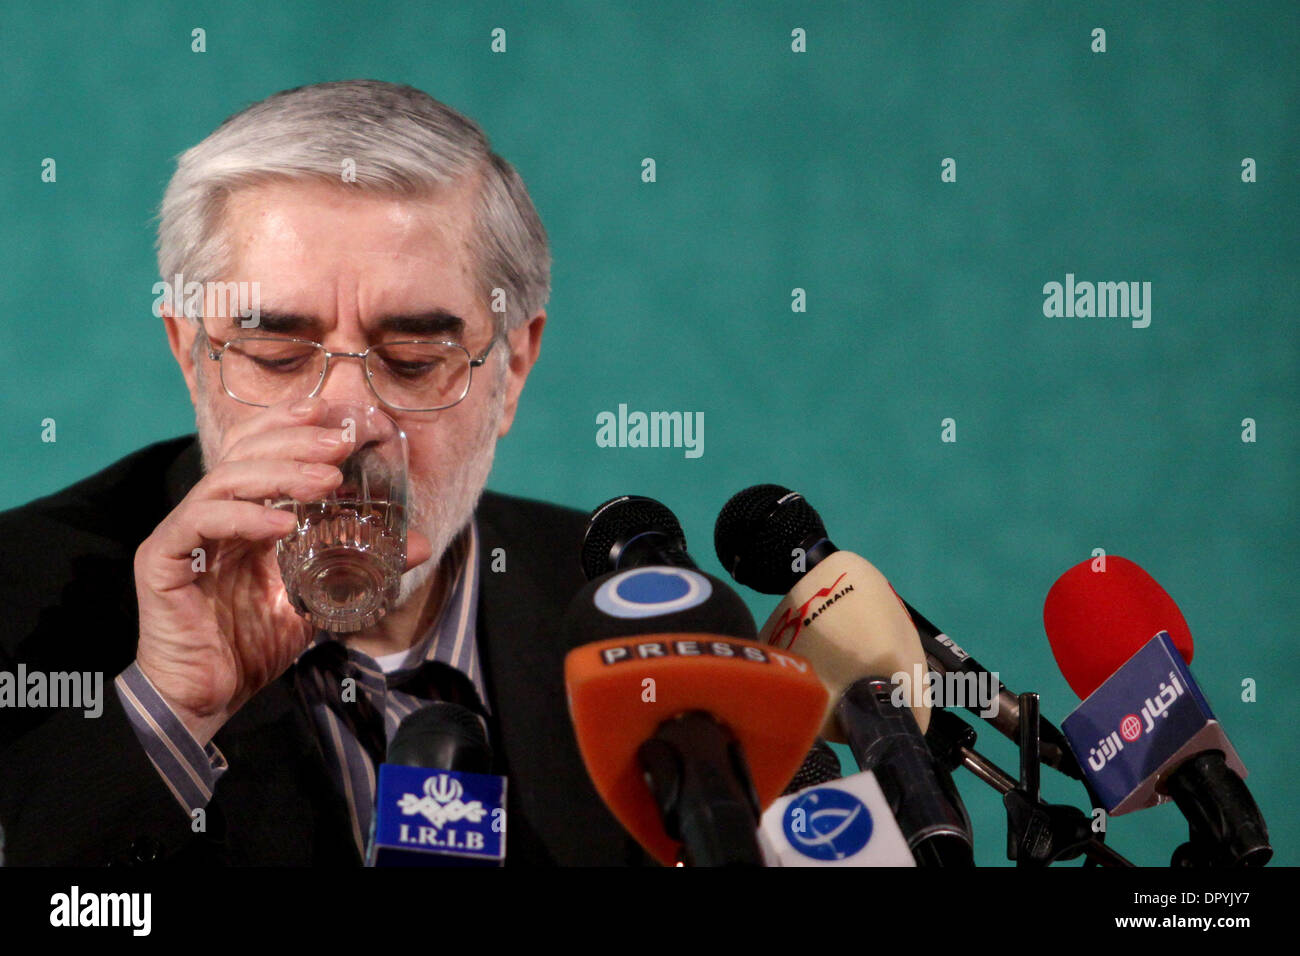 Apr 19, 2009 - Tehran, Iran - Former Iranian prime minister and candidate for the June 12 presidential election, Mir HOSSEIN MOUSAVI, 67, sips water during a meeting with artists and cultural people to talk about his programs about Iran's art and culture. Mousavi visited artists, directors, actors, writers, poets and other cultural people. He has chosen a 'Cultural government, non- - Stock Image